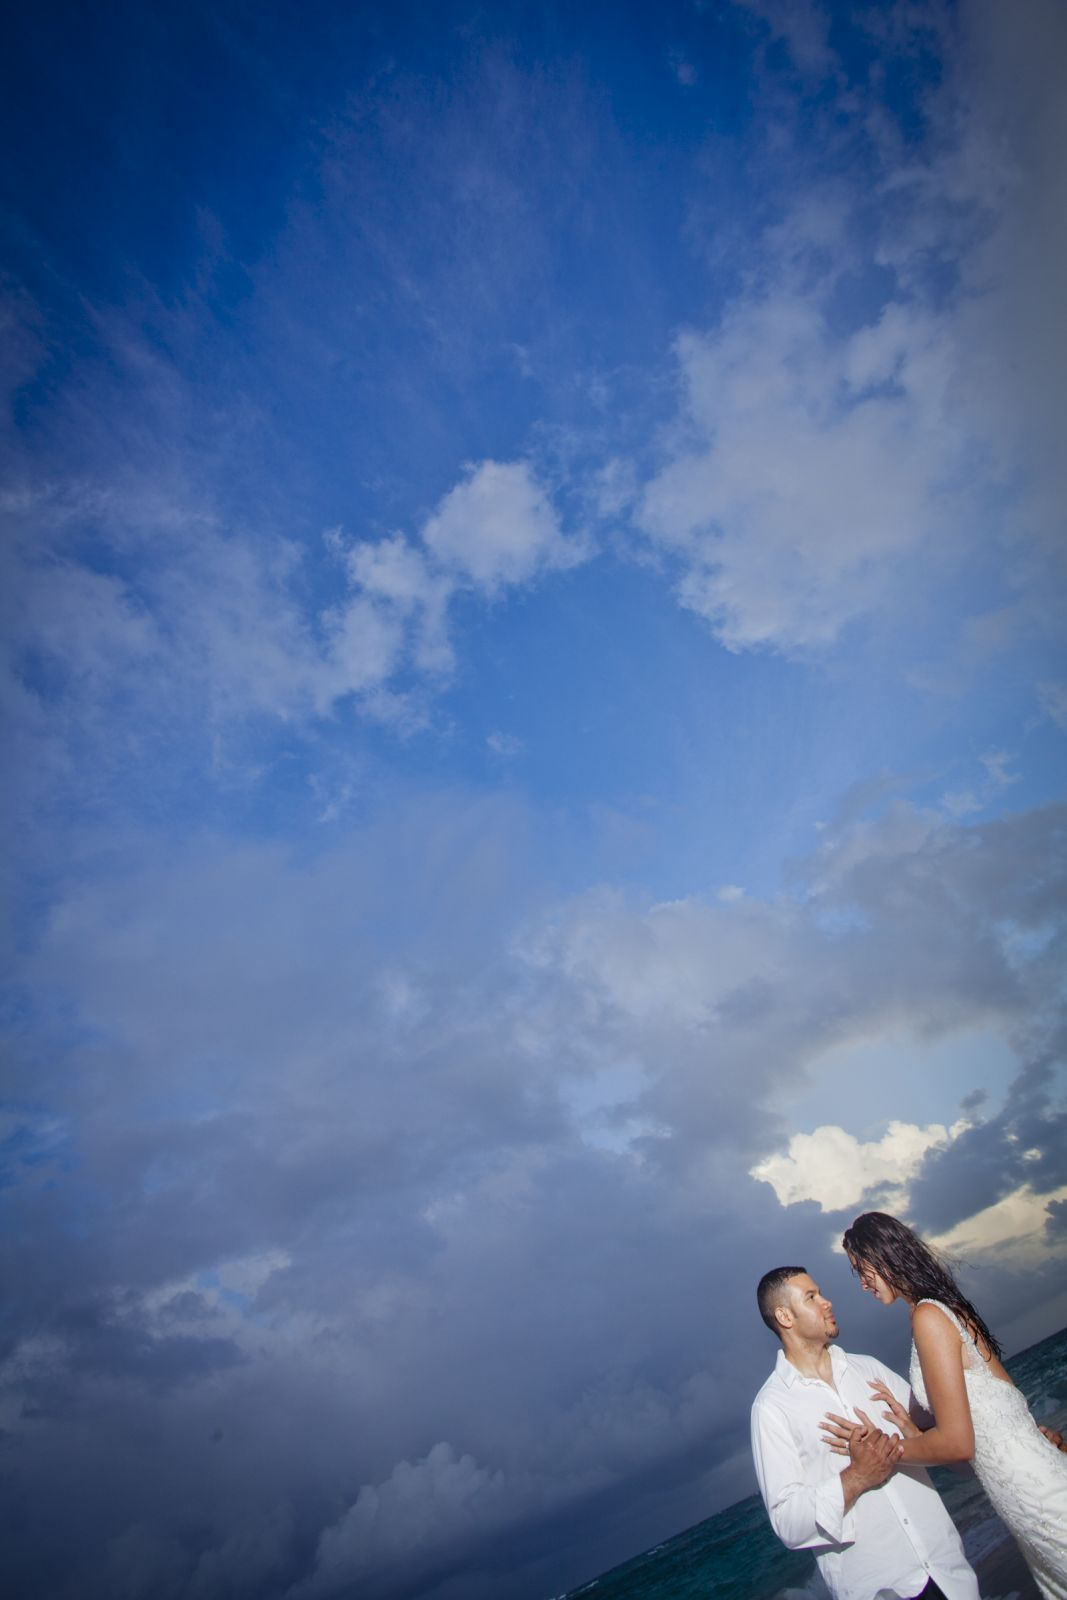 Nothing but blue skies- it rained as soon as we took our last shot but you would never know